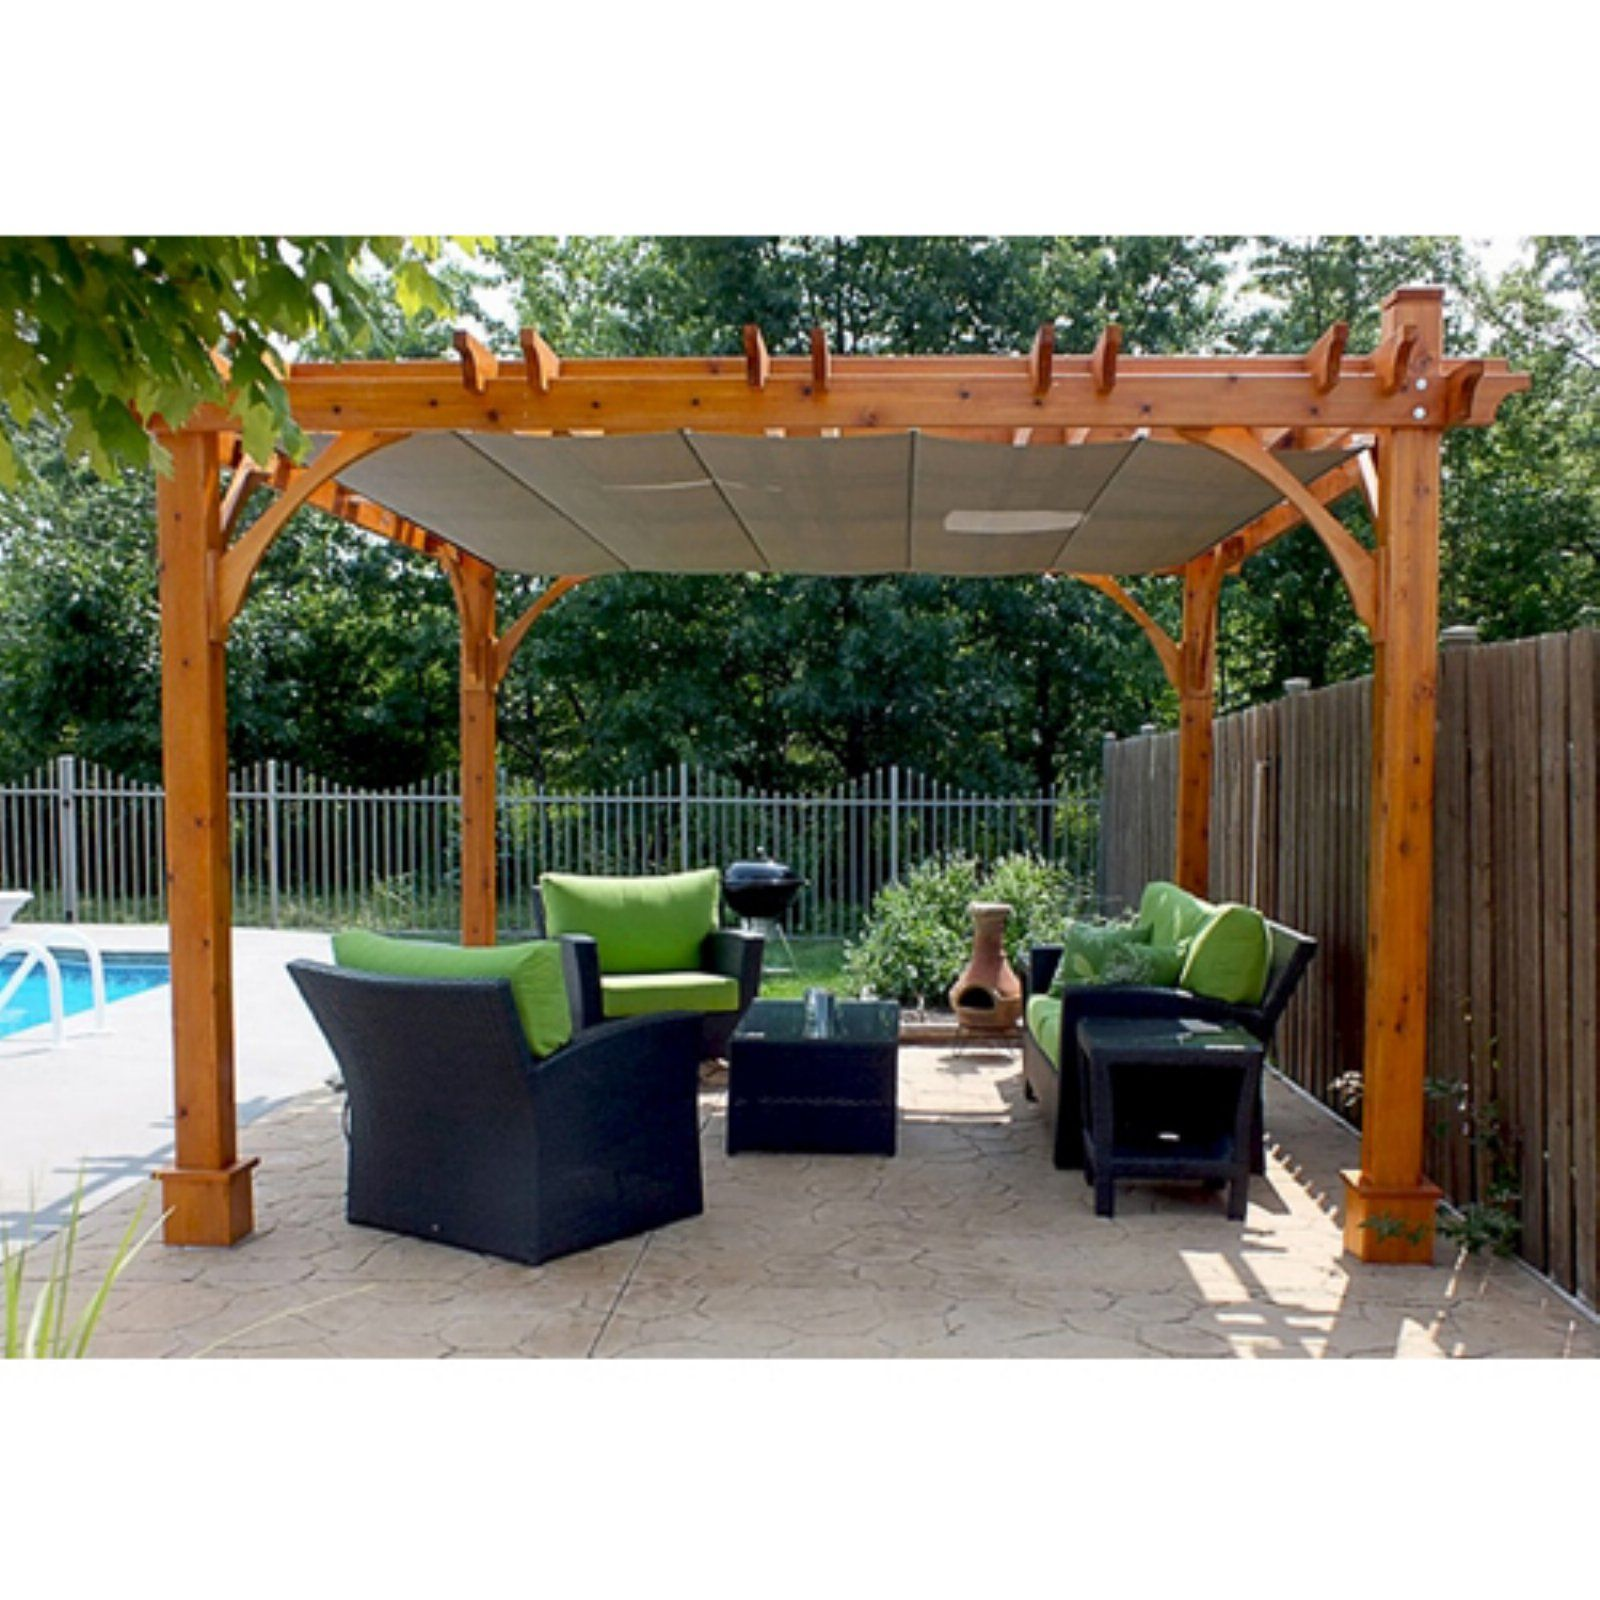 Outdoor living today breeze 12 ft pergola with